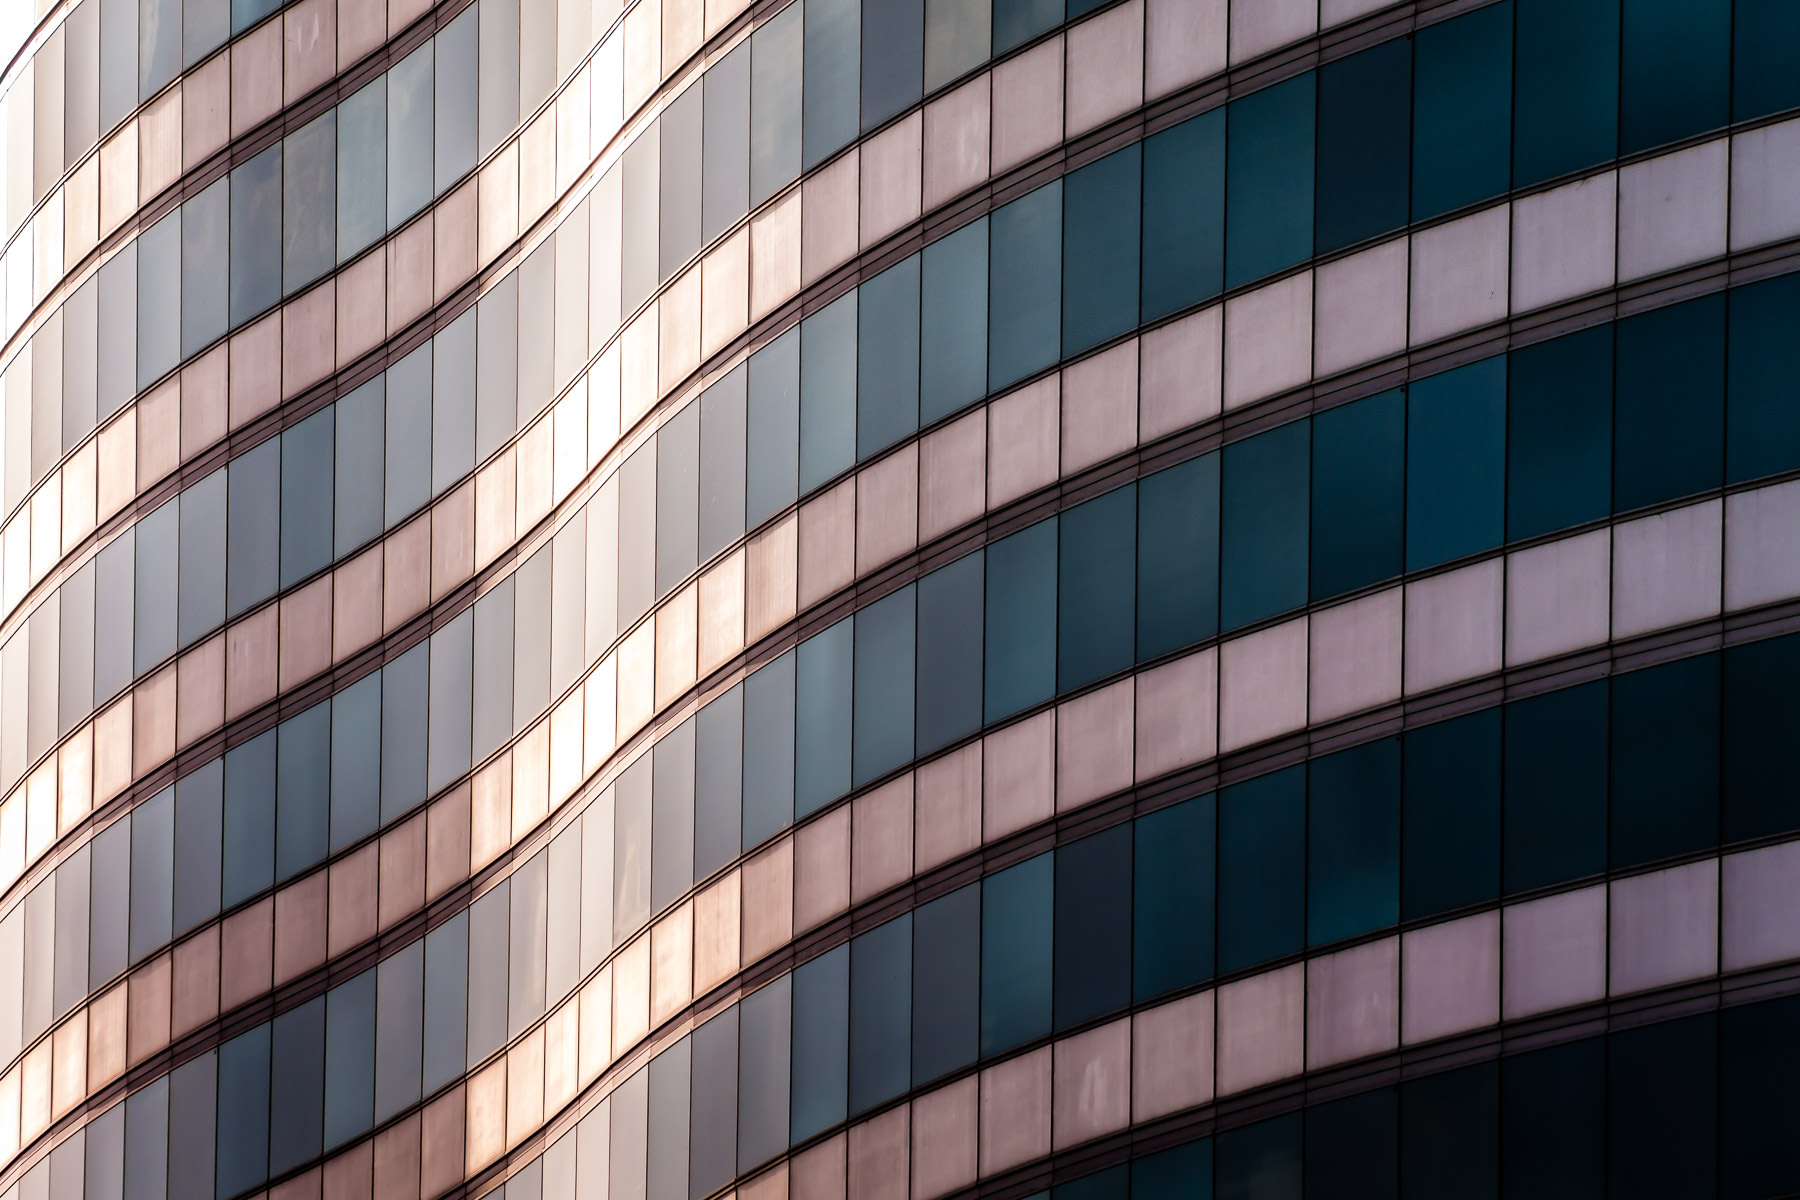 Abstract detail of the 22-story 600 Las Colinas tower in Las Colinas, Irving, Texas.